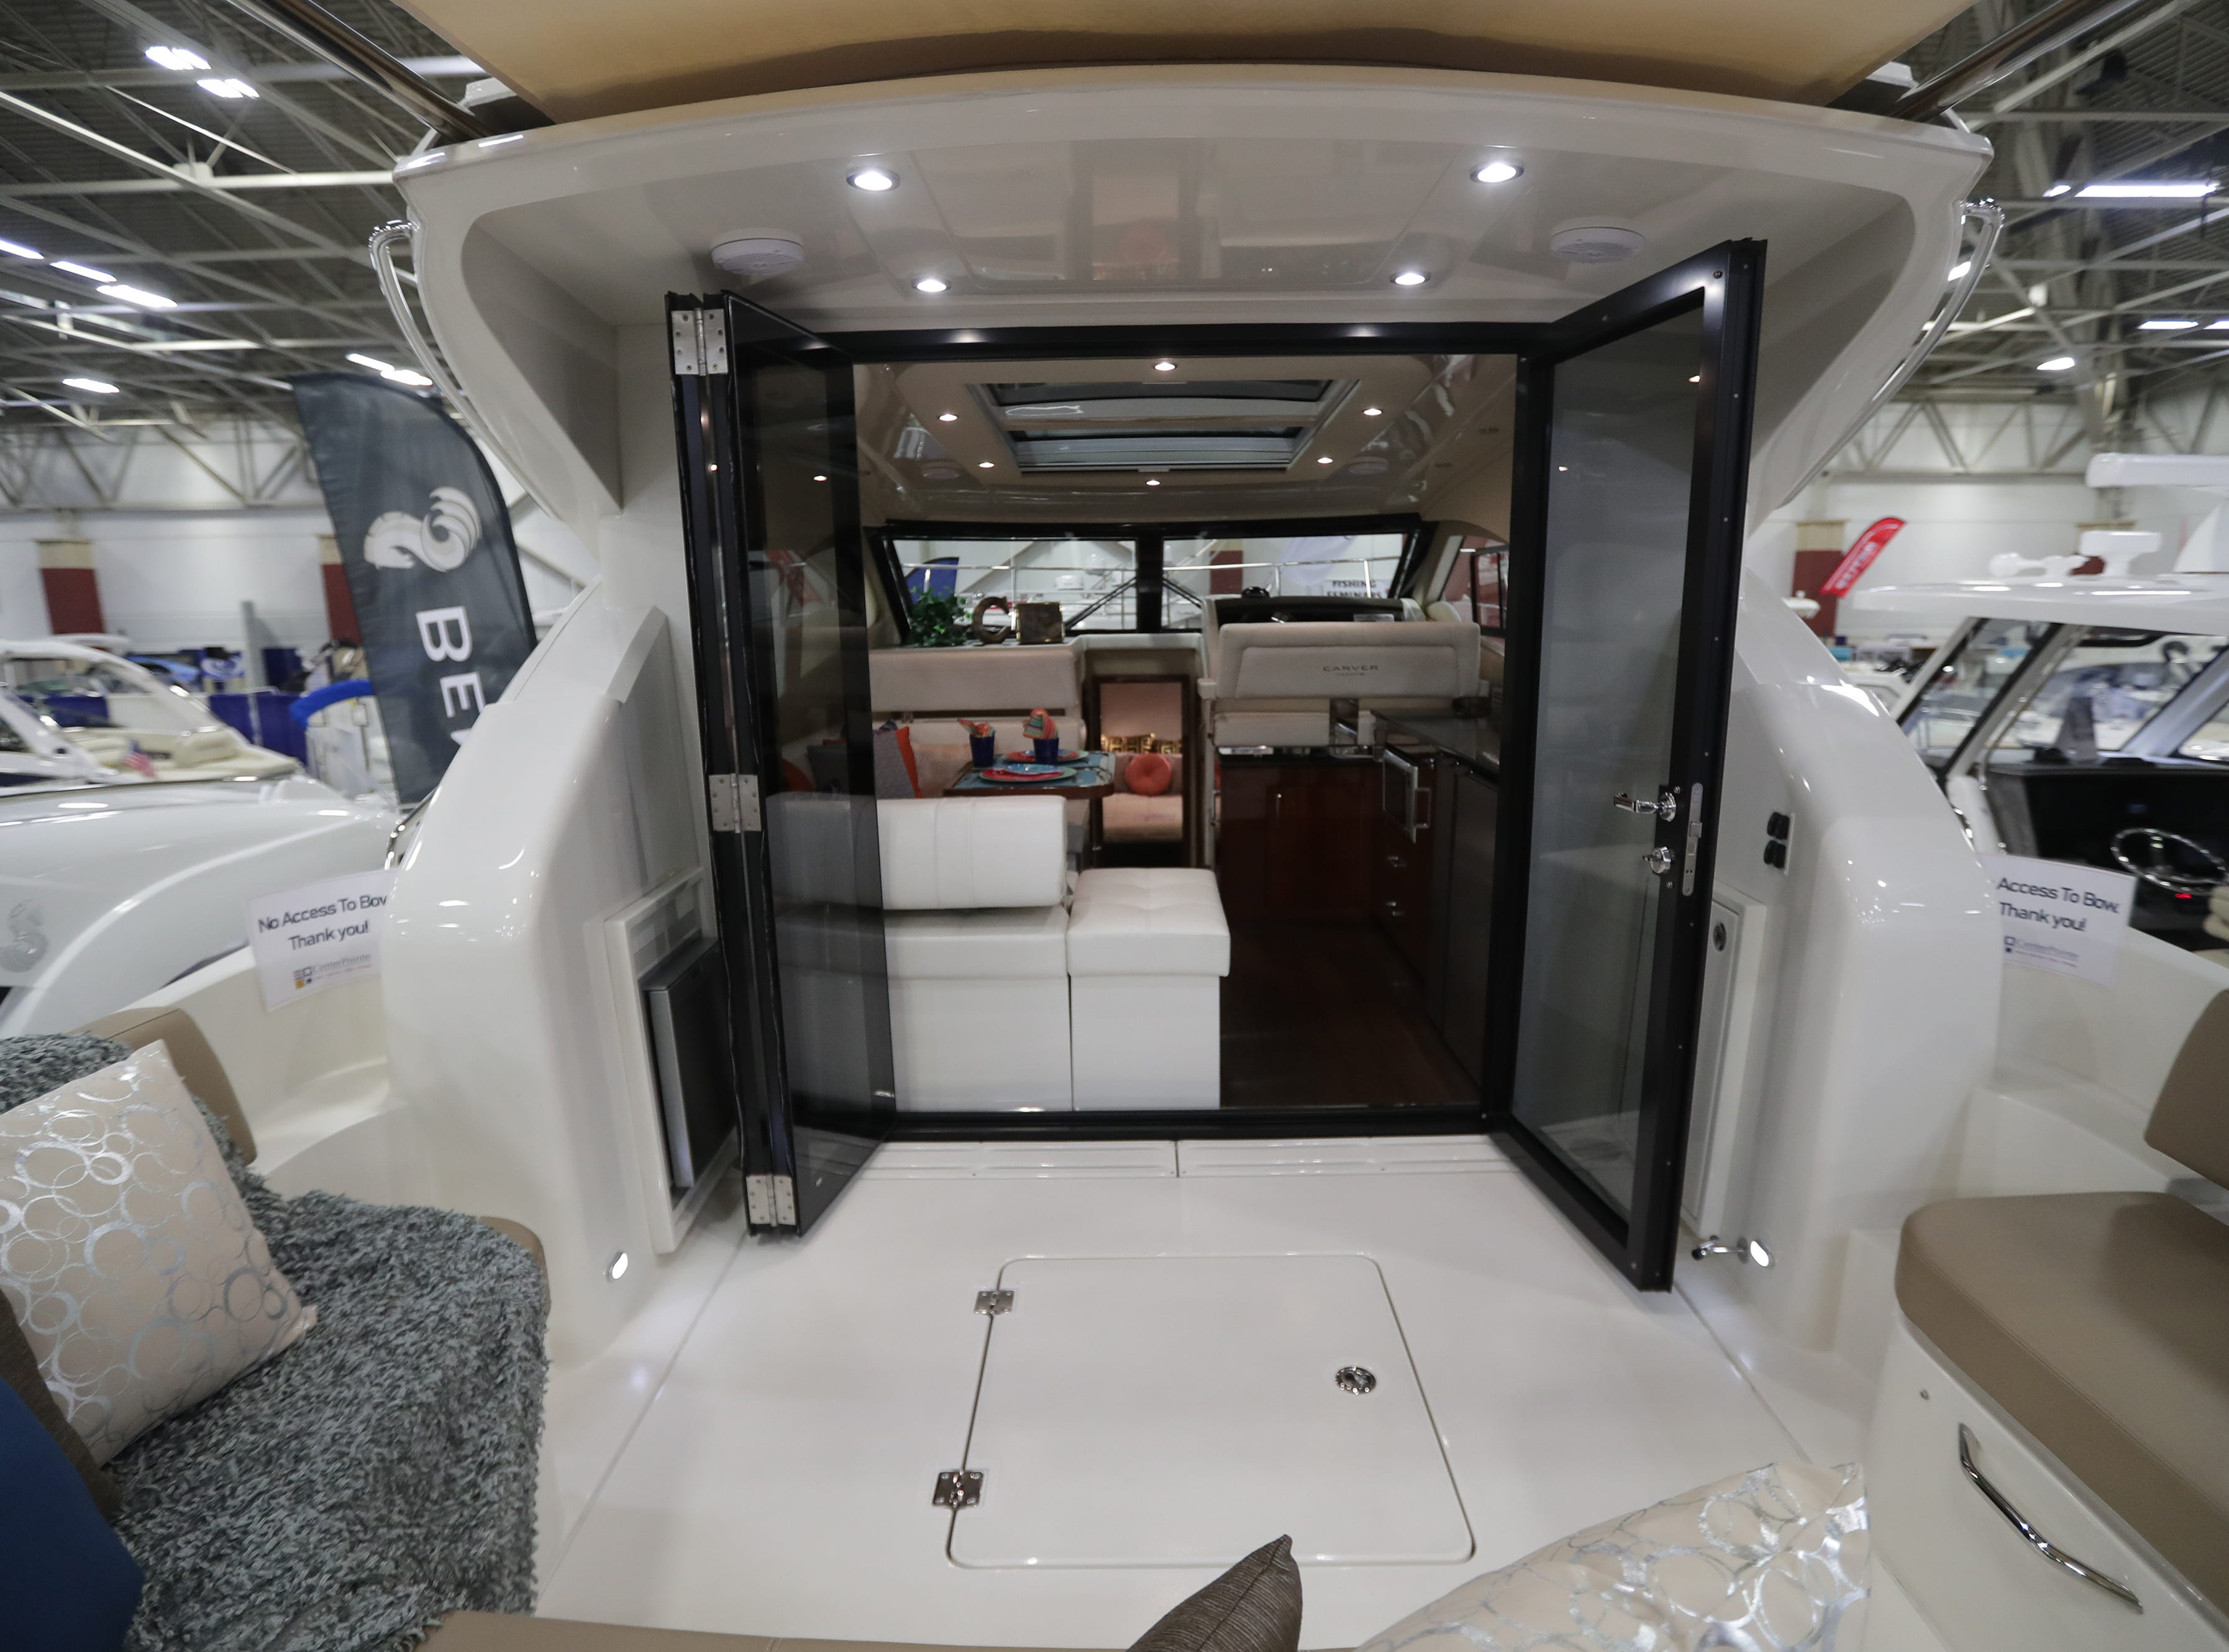 The rear area of a 2019 37-foot Carver yacht, which lists for $459,000.